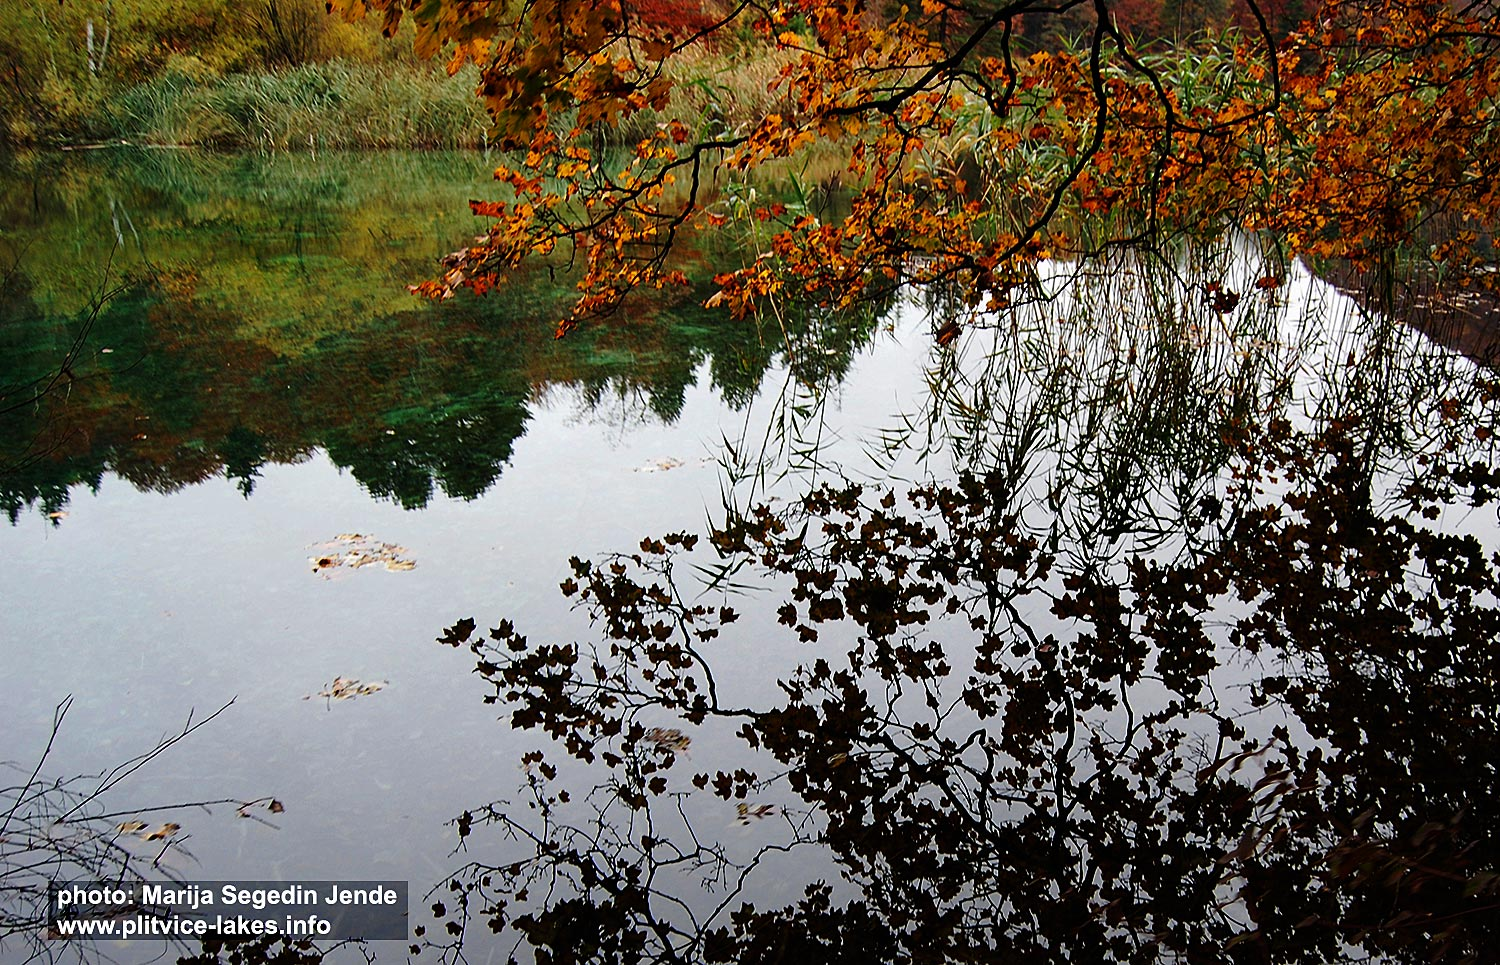 Reflections in water in Vir jezero (Lake) - Plitvice National Park